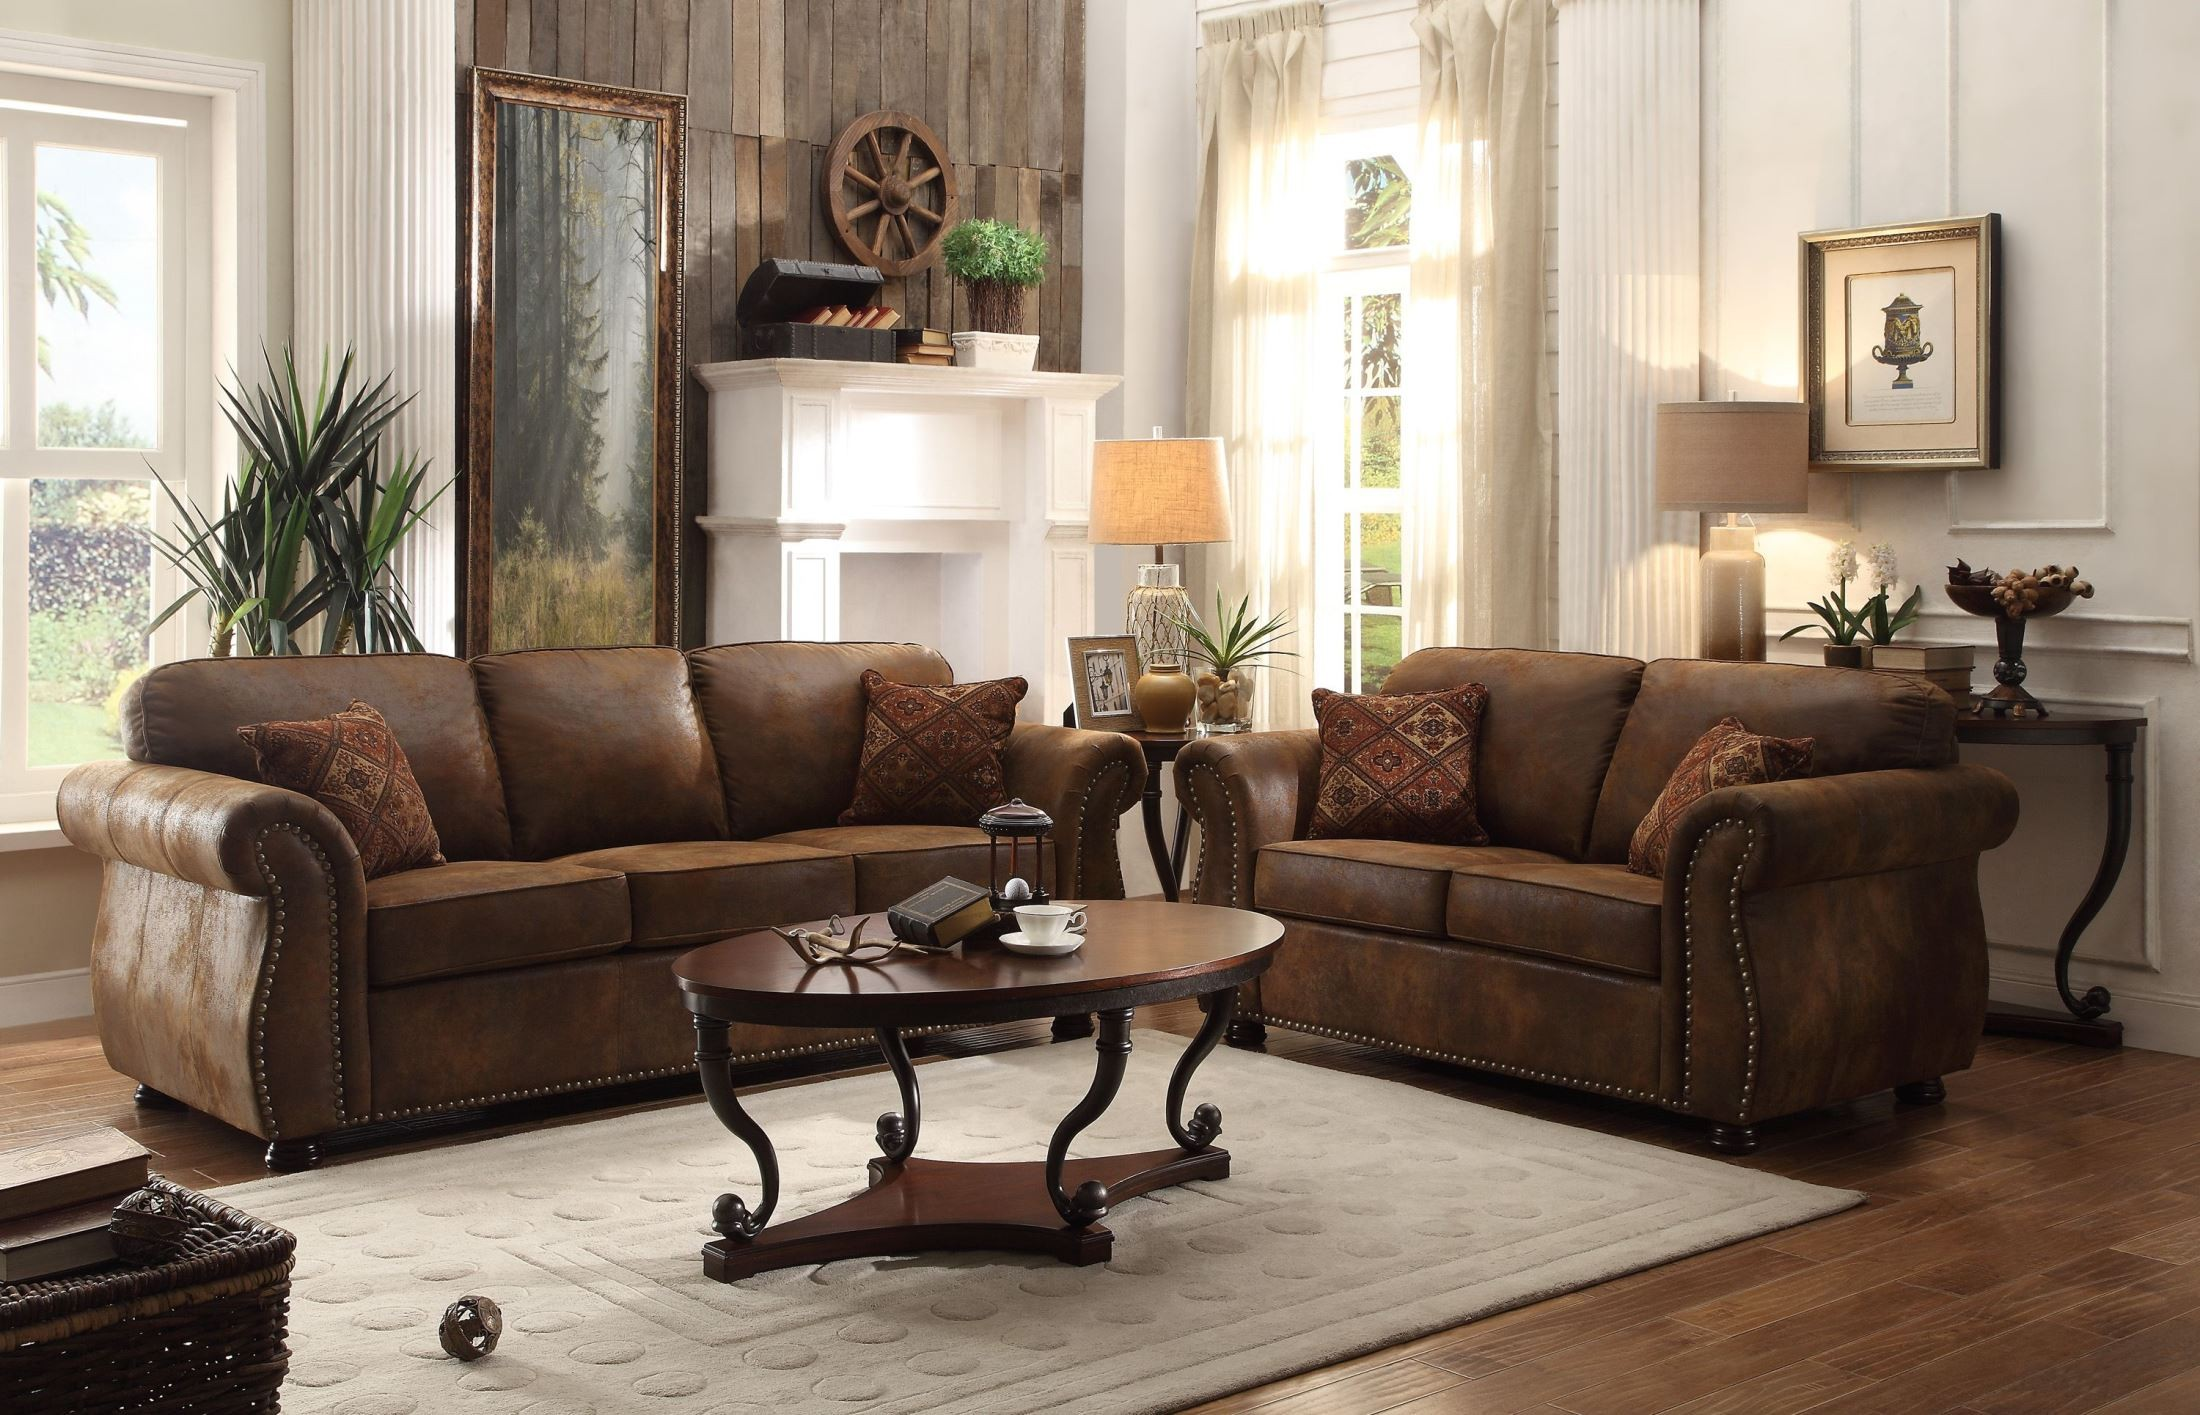 Corvallis brown living room set from homelegance 8405bj 3 for Front room furniture sets